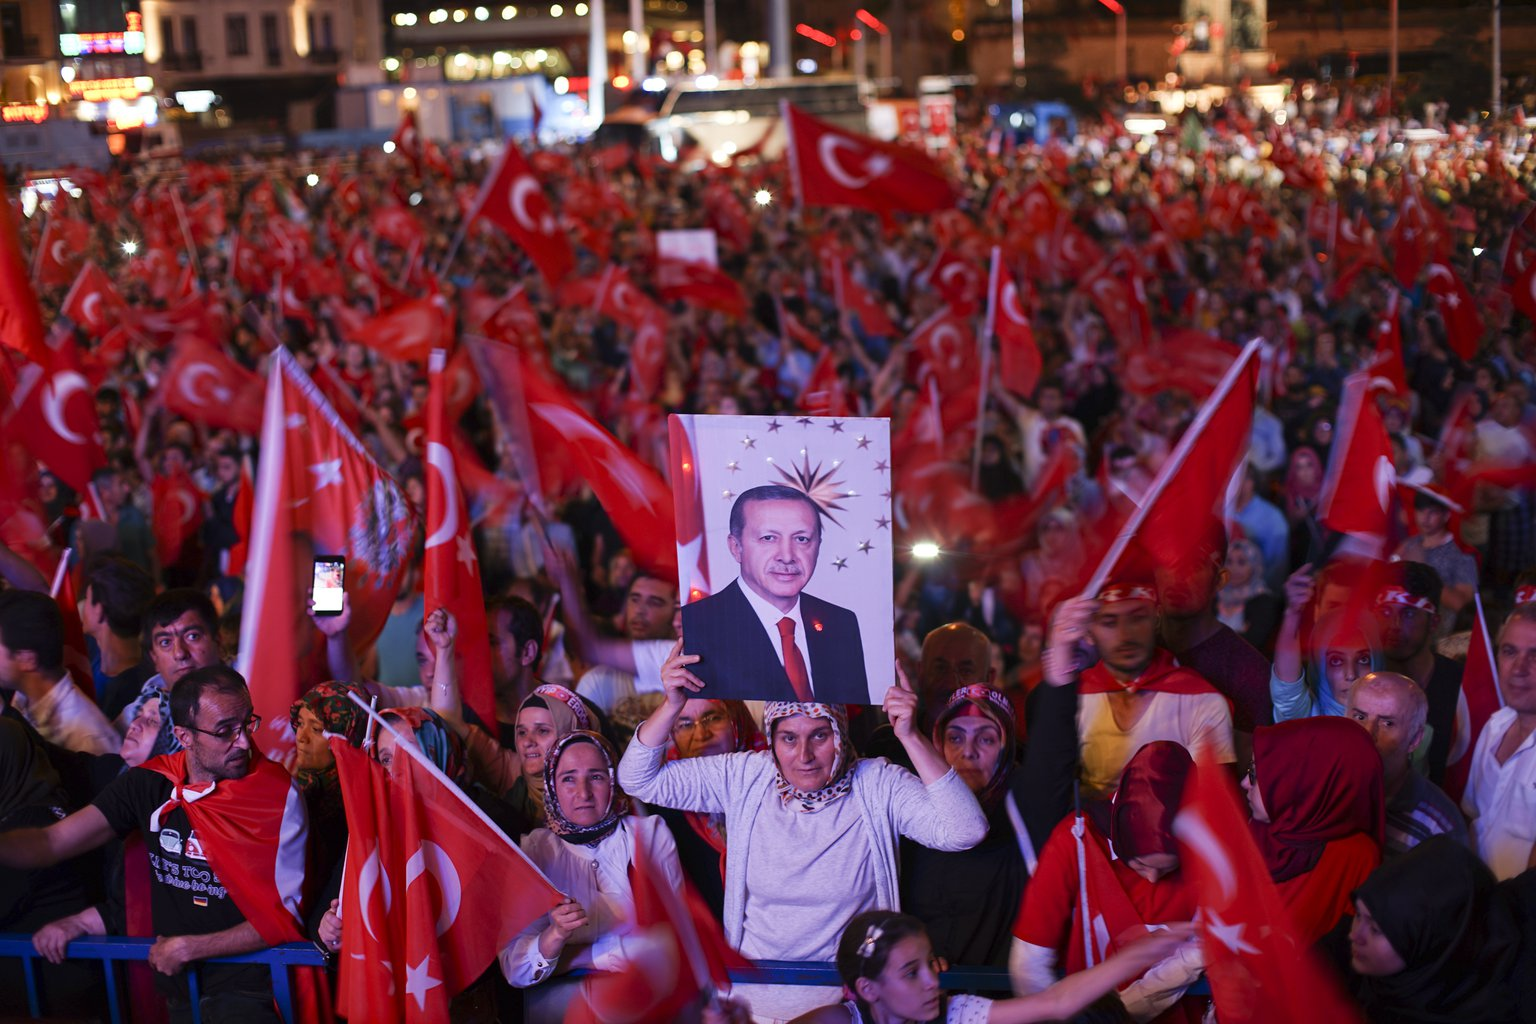 post-coup-2016-Istanbul.jpg